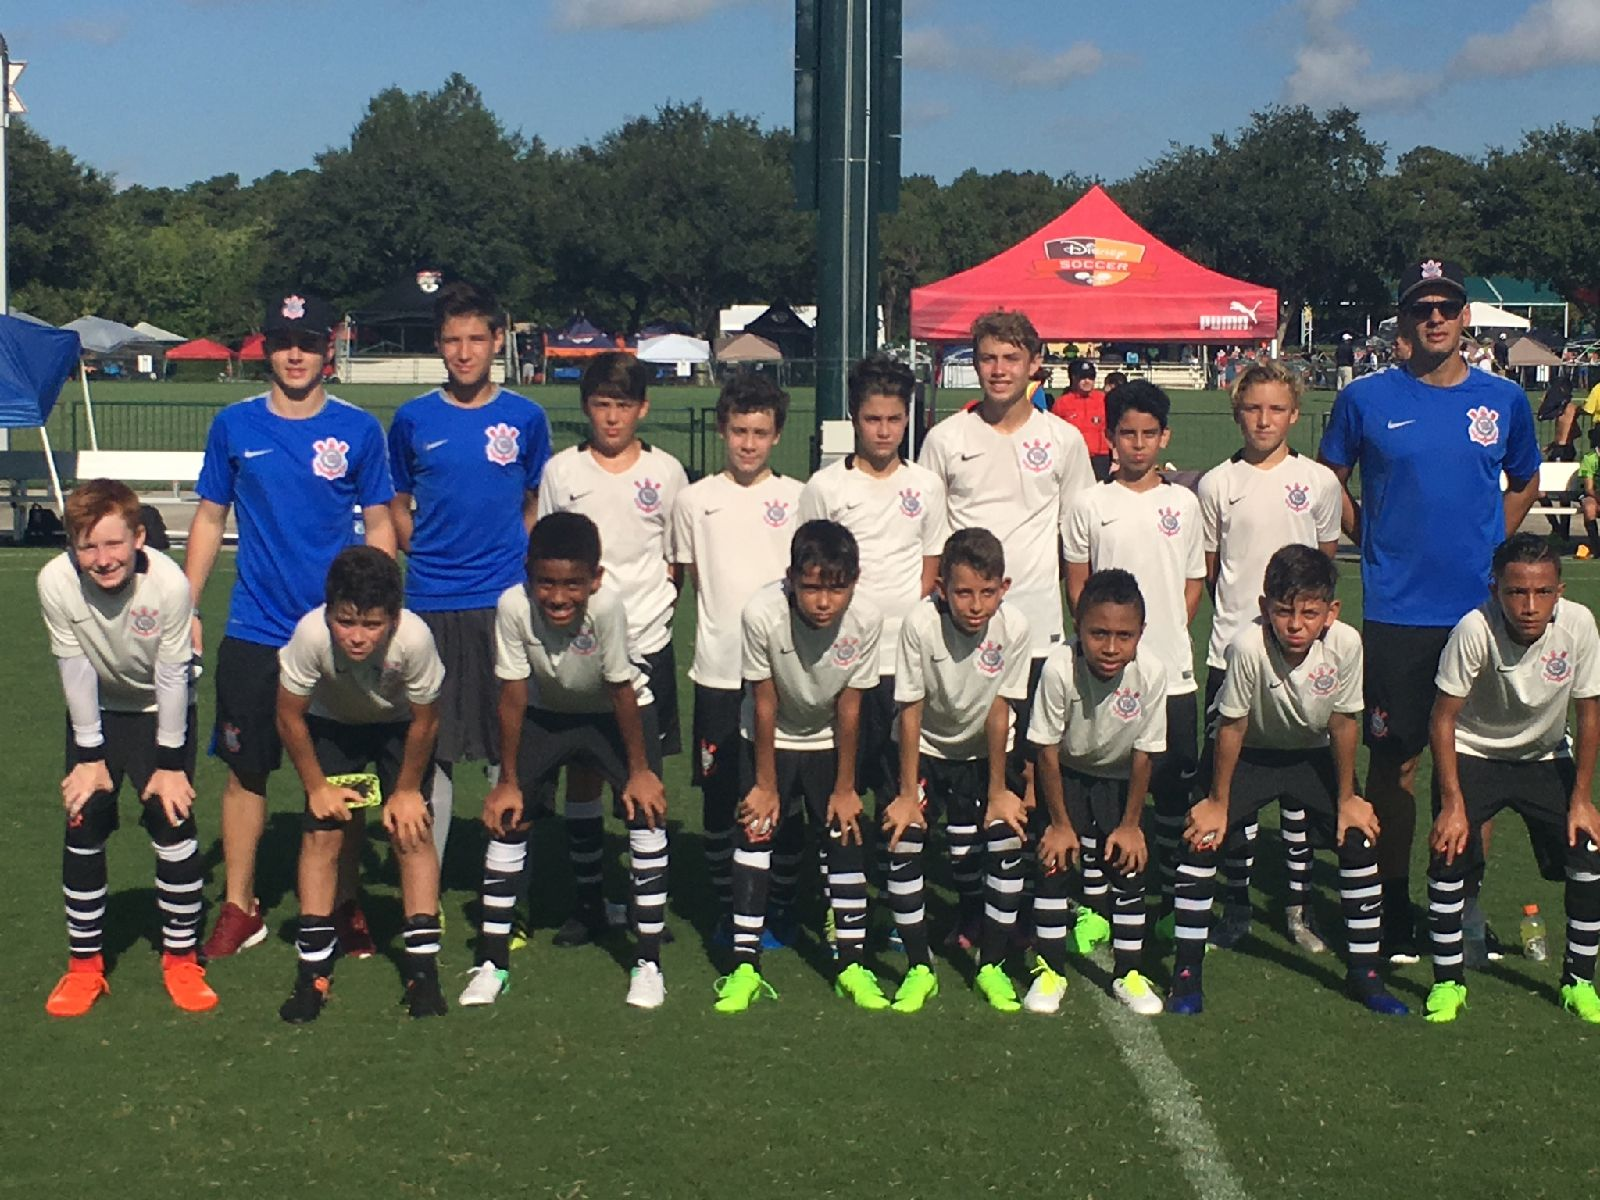 FKK - Brazil Another great FKK opportunity! Five of our 04 Kraze boys guest played with  the Corinthians of Brazil at the Disney International Tournament.